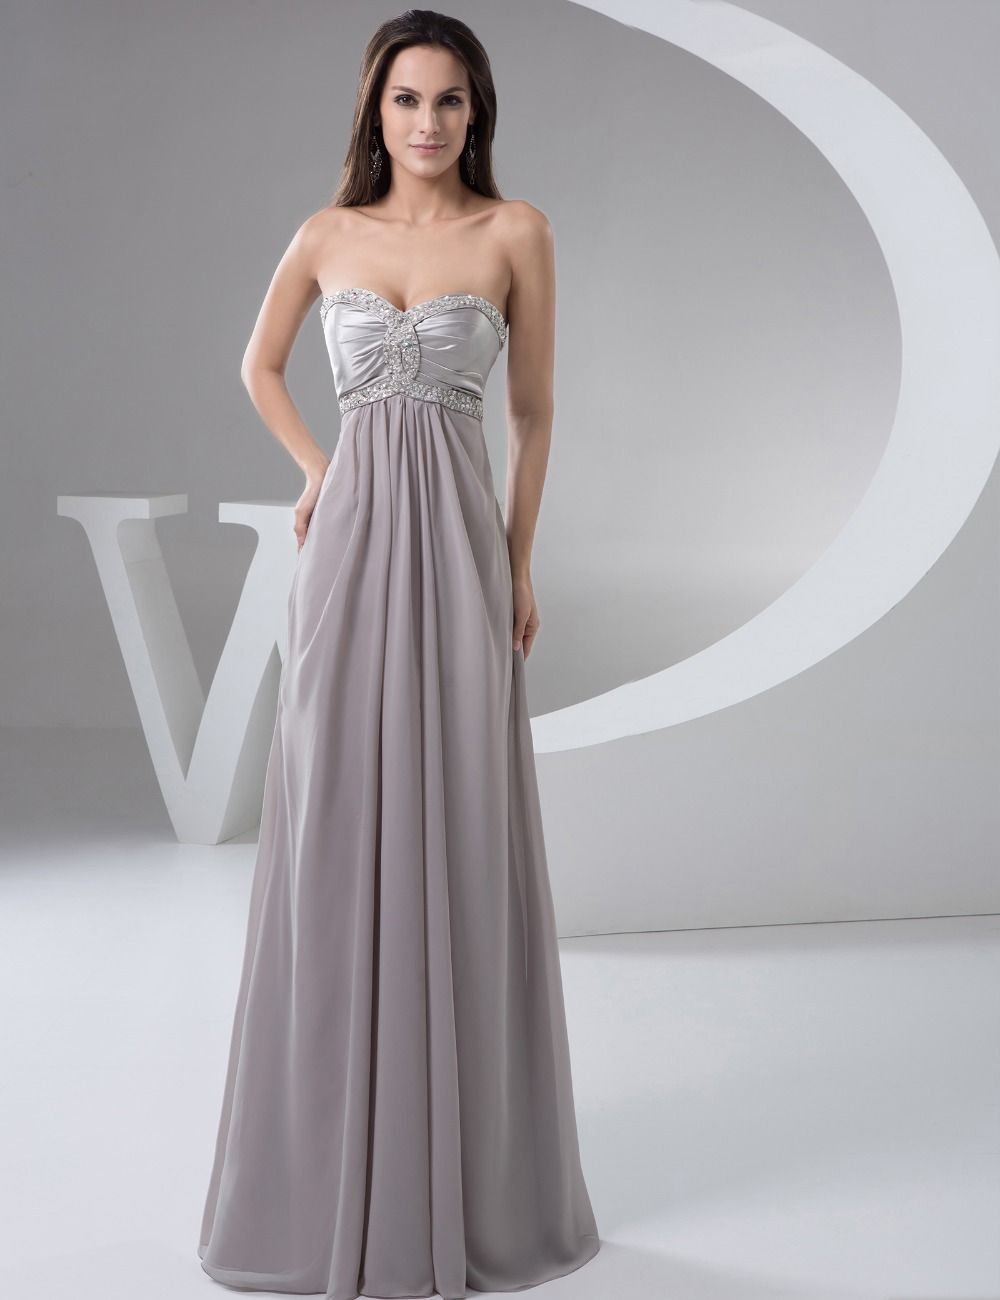 Elegant Bridal Summer Dress Royal Grey Chiffon